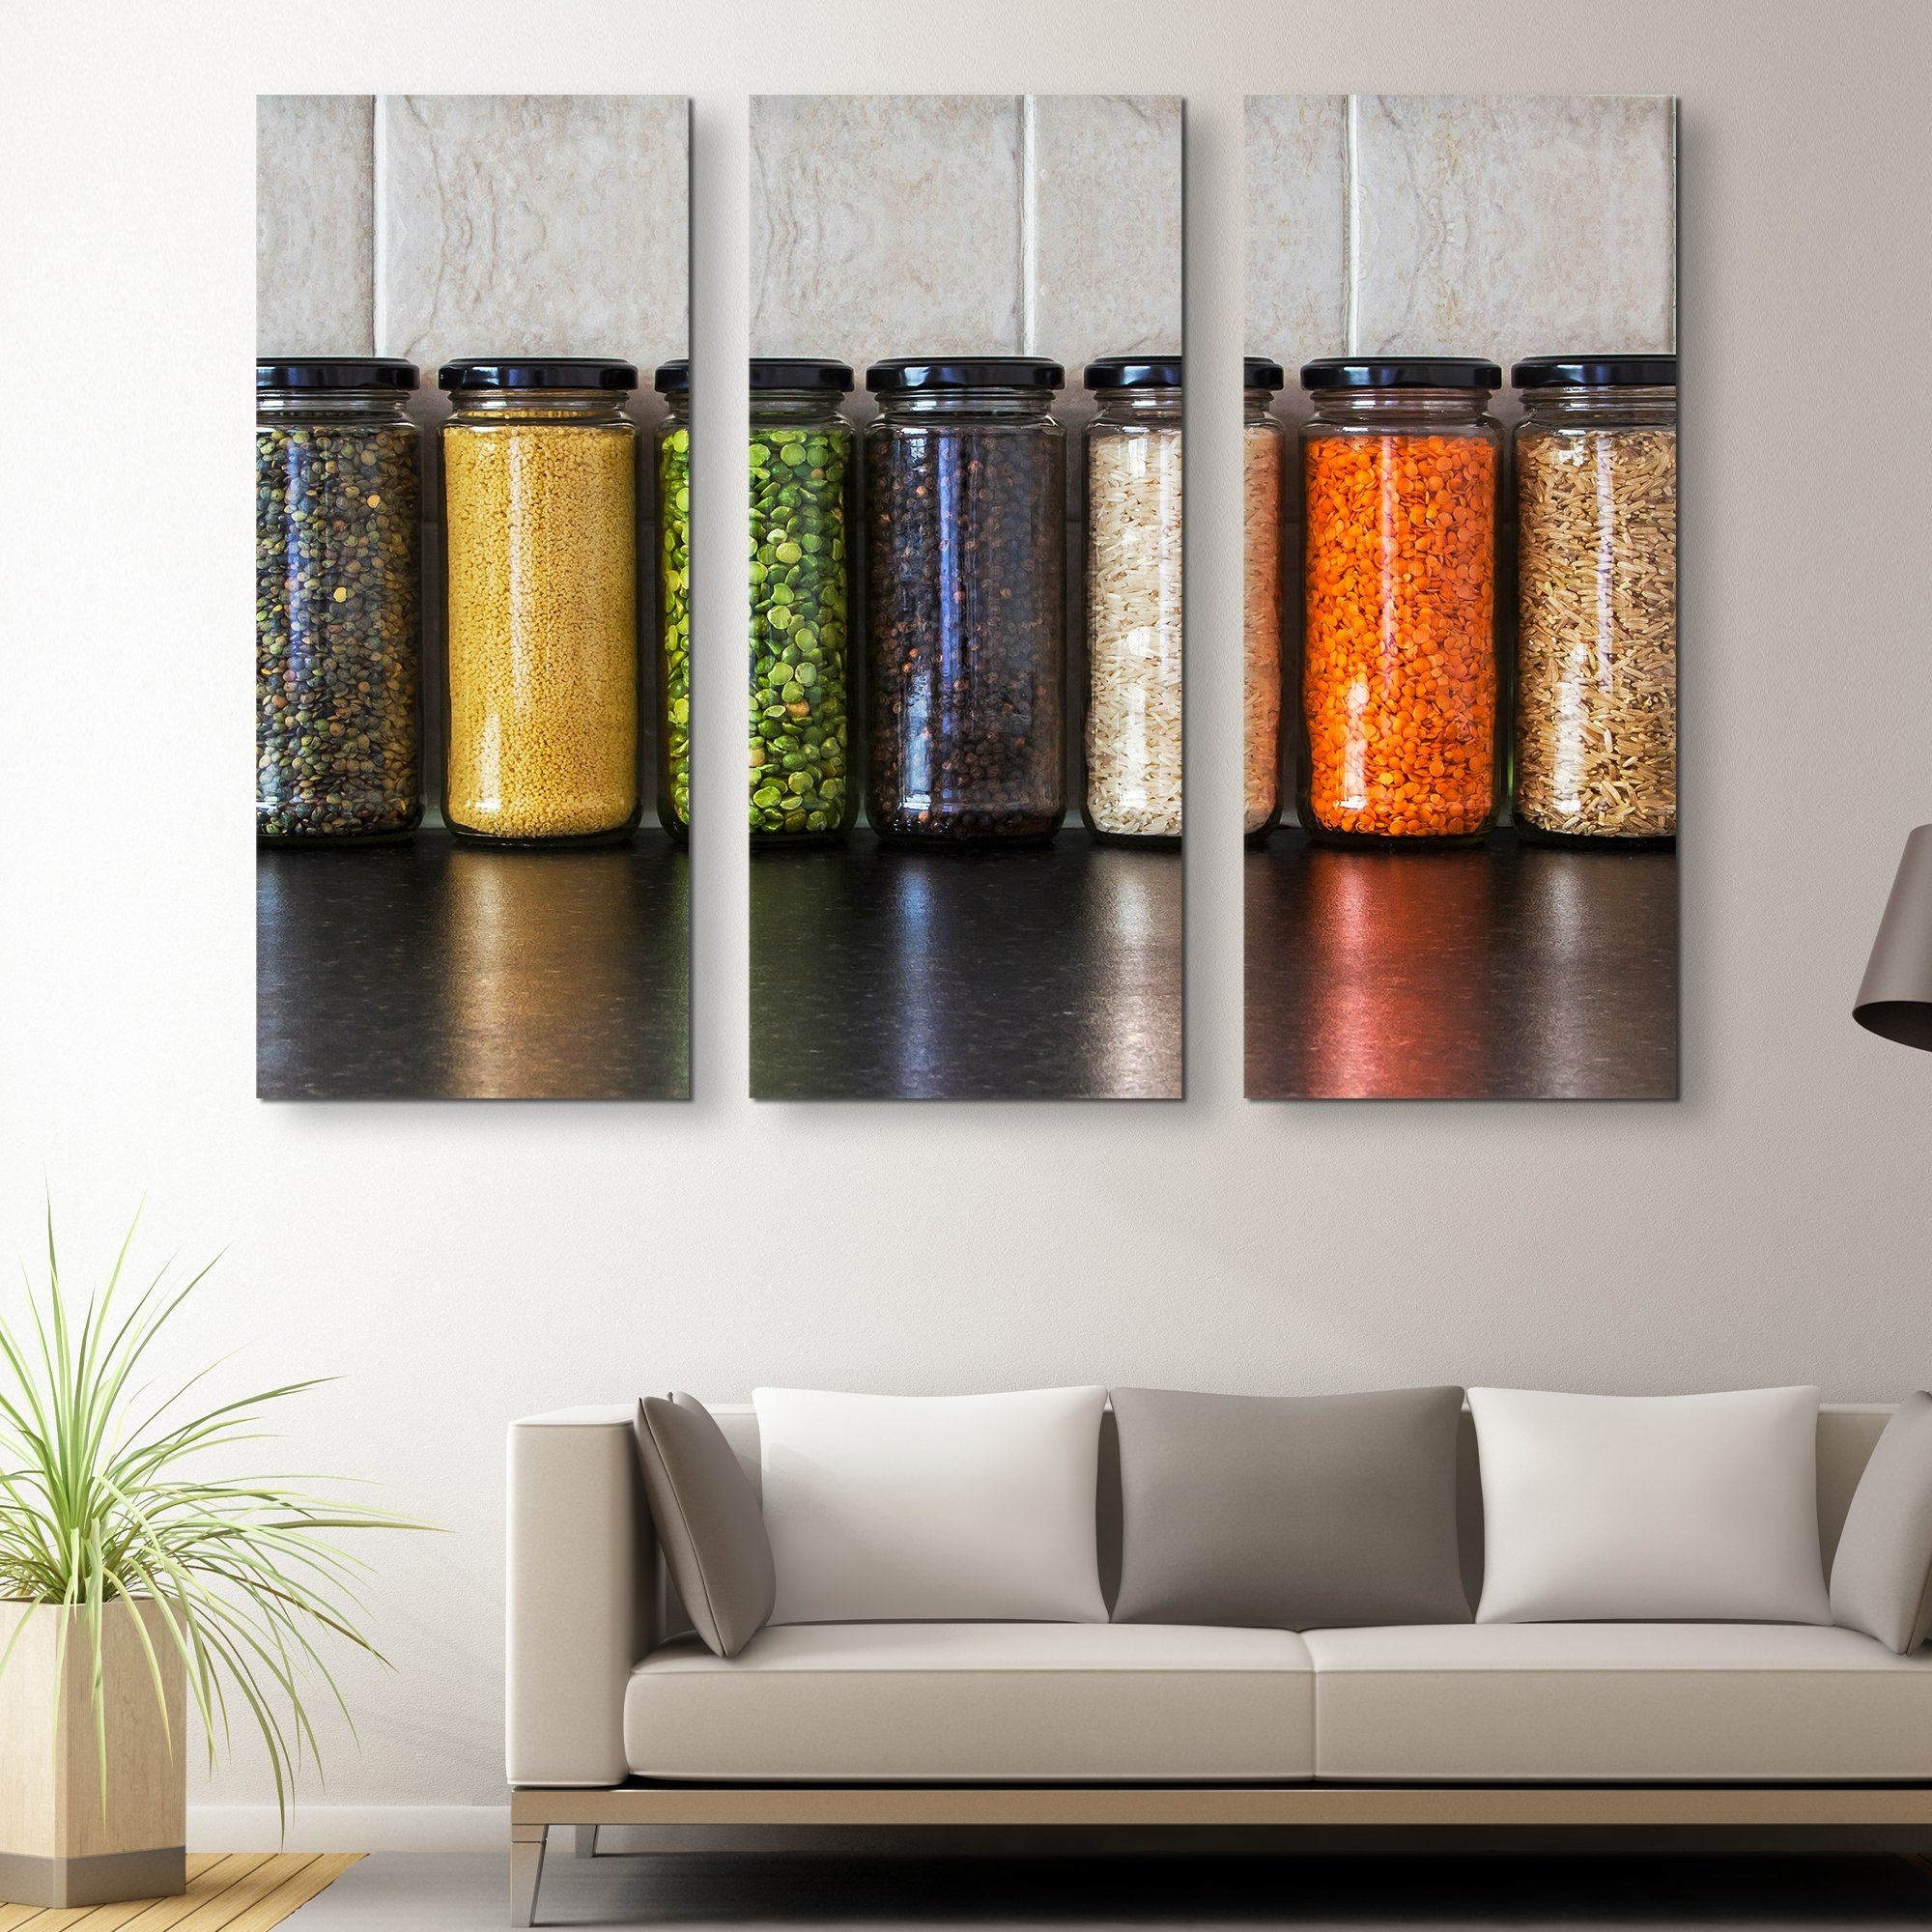 3 piece Seeds and Pulses in Jars wall art